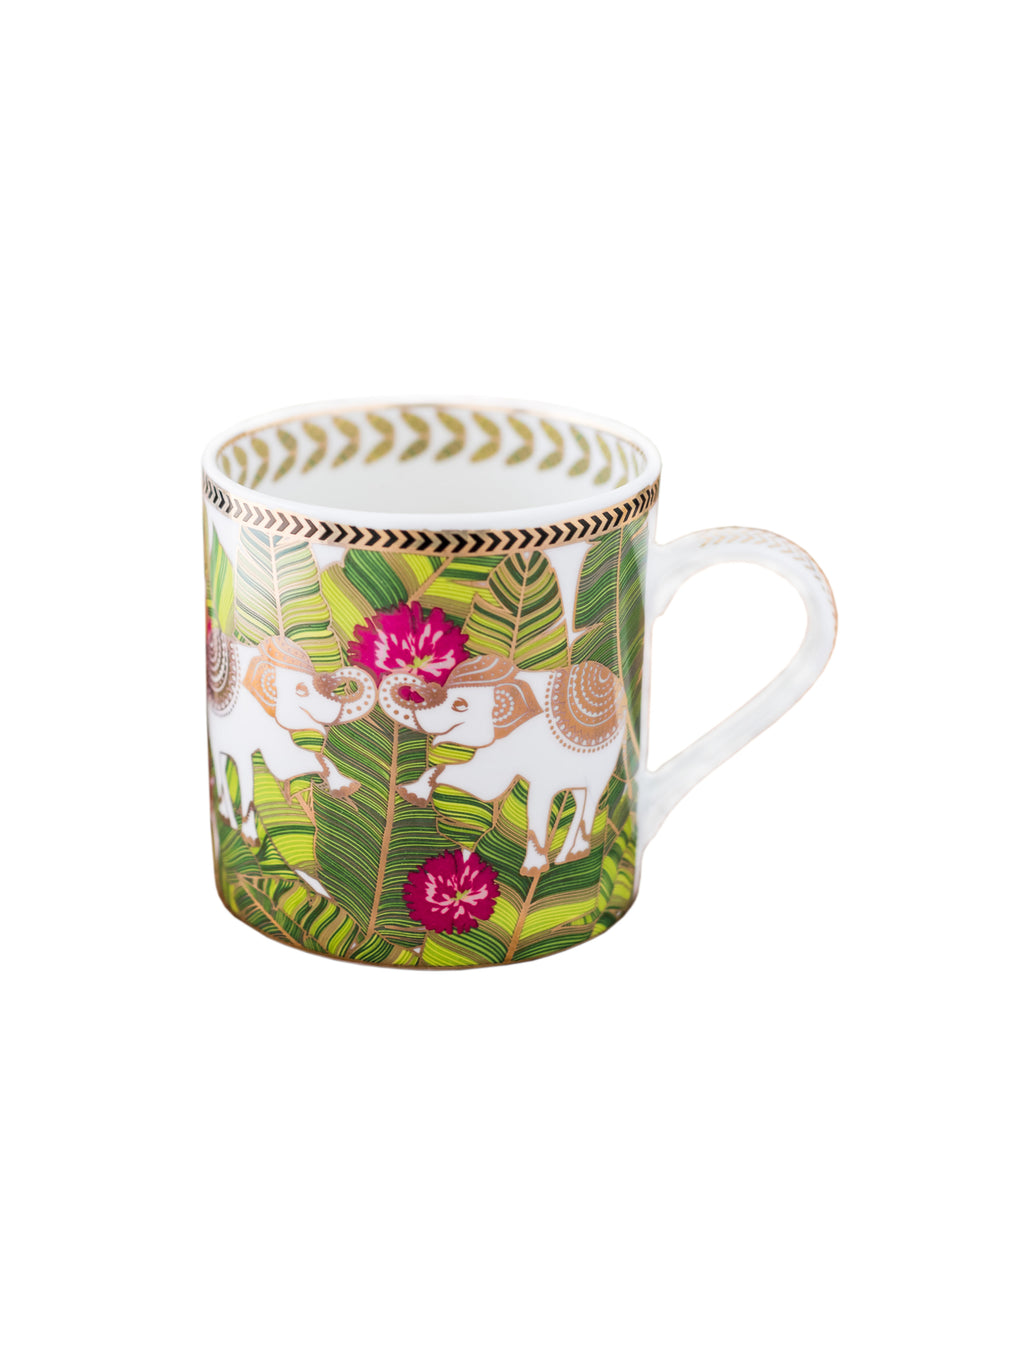 Bone China Mug Set with Real Gold Print (Set of 2 pcs). (Made in India) ZOE2MM914